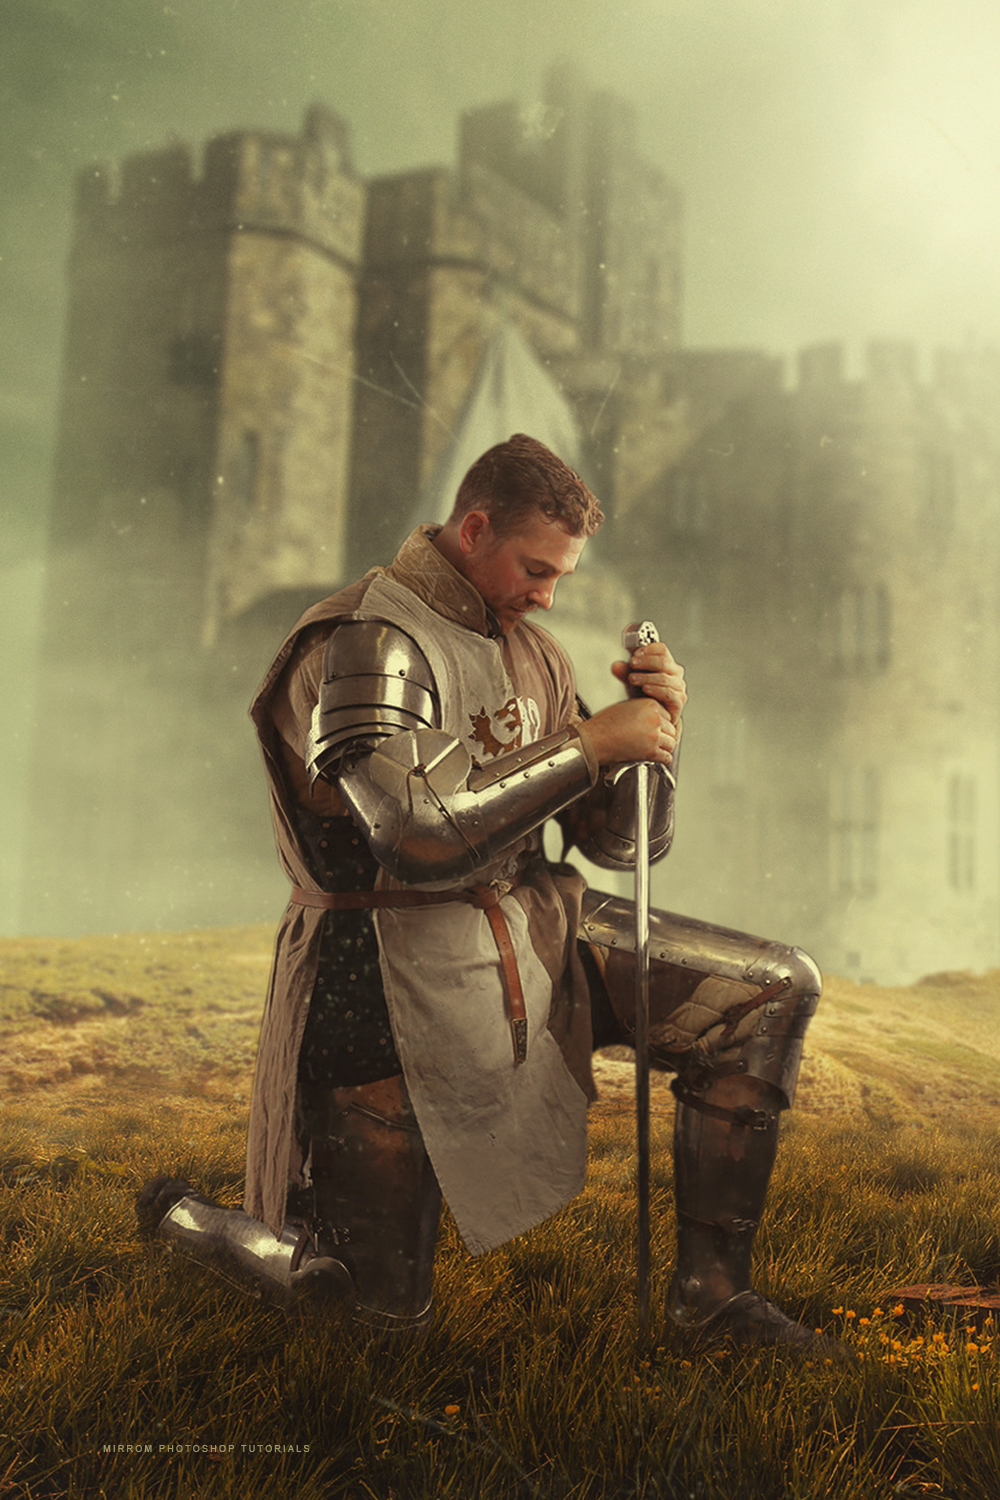 The Knight Photo Manipulation in Photoshop CC